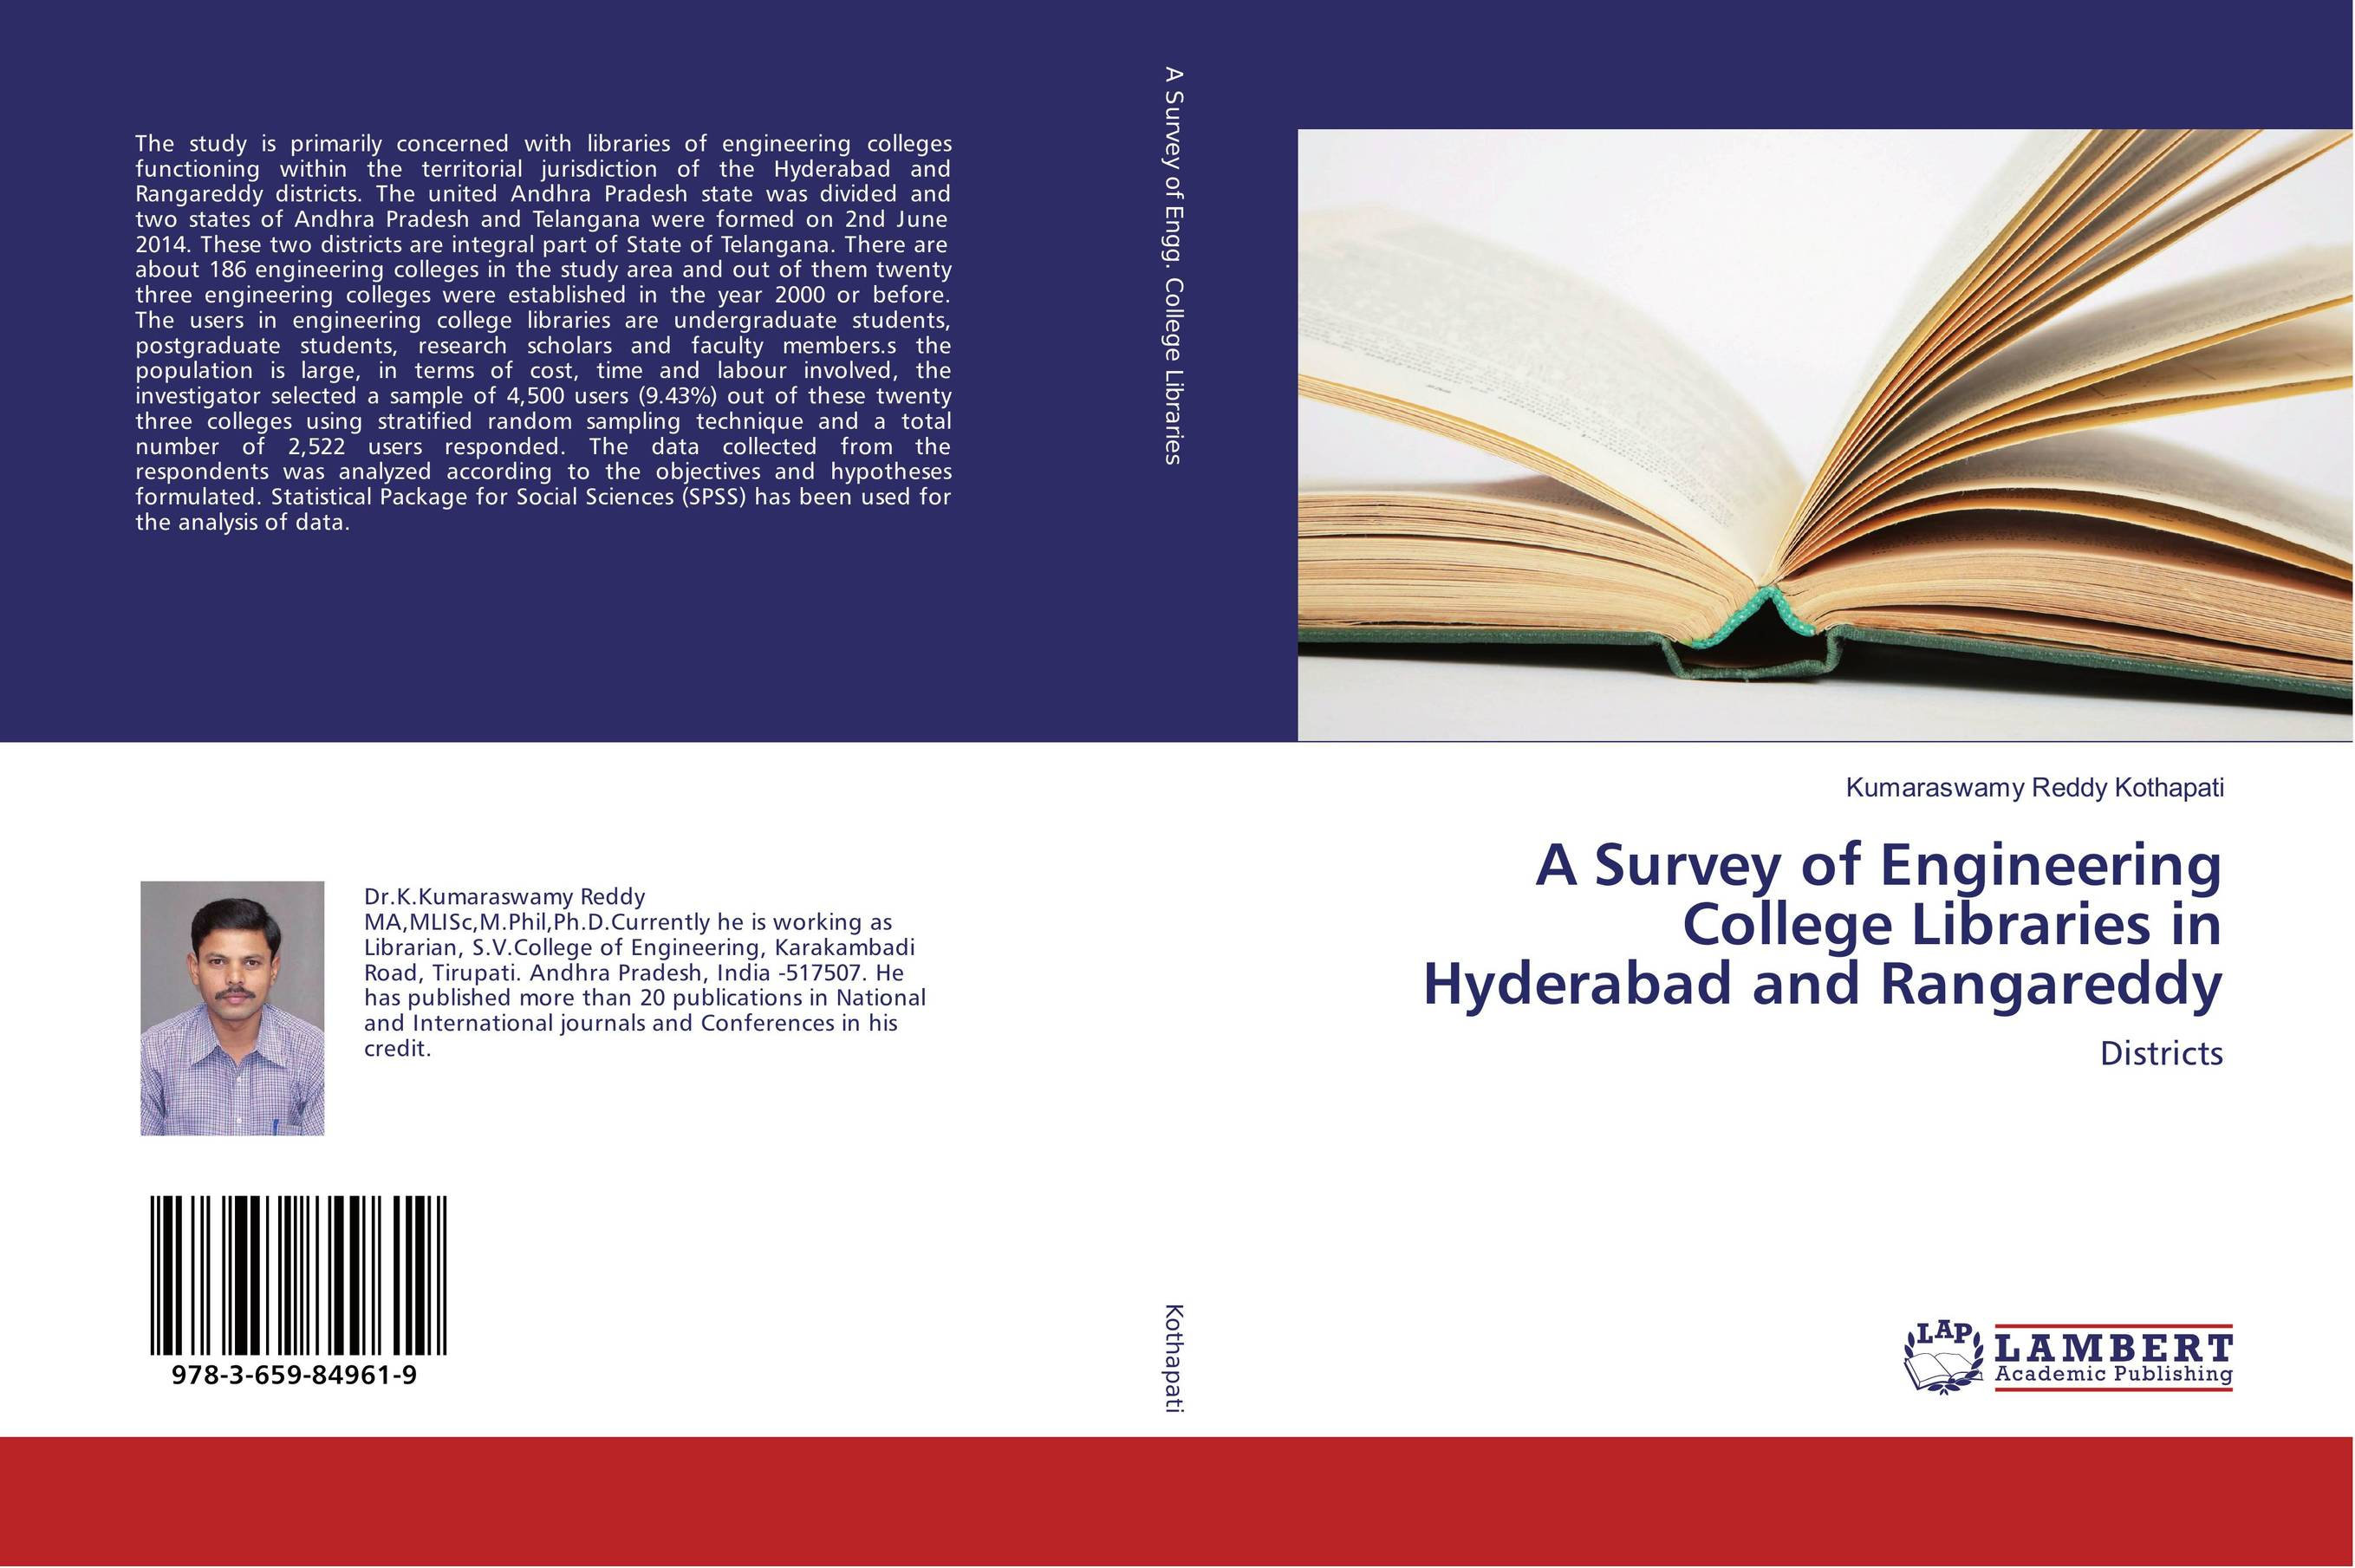 A Survey of Engineering College Libraries in Hyderabad and Rangareddy rakesh bhatia surinder bir singh and harpreet kaur organizational development comparative study of engineering colleges